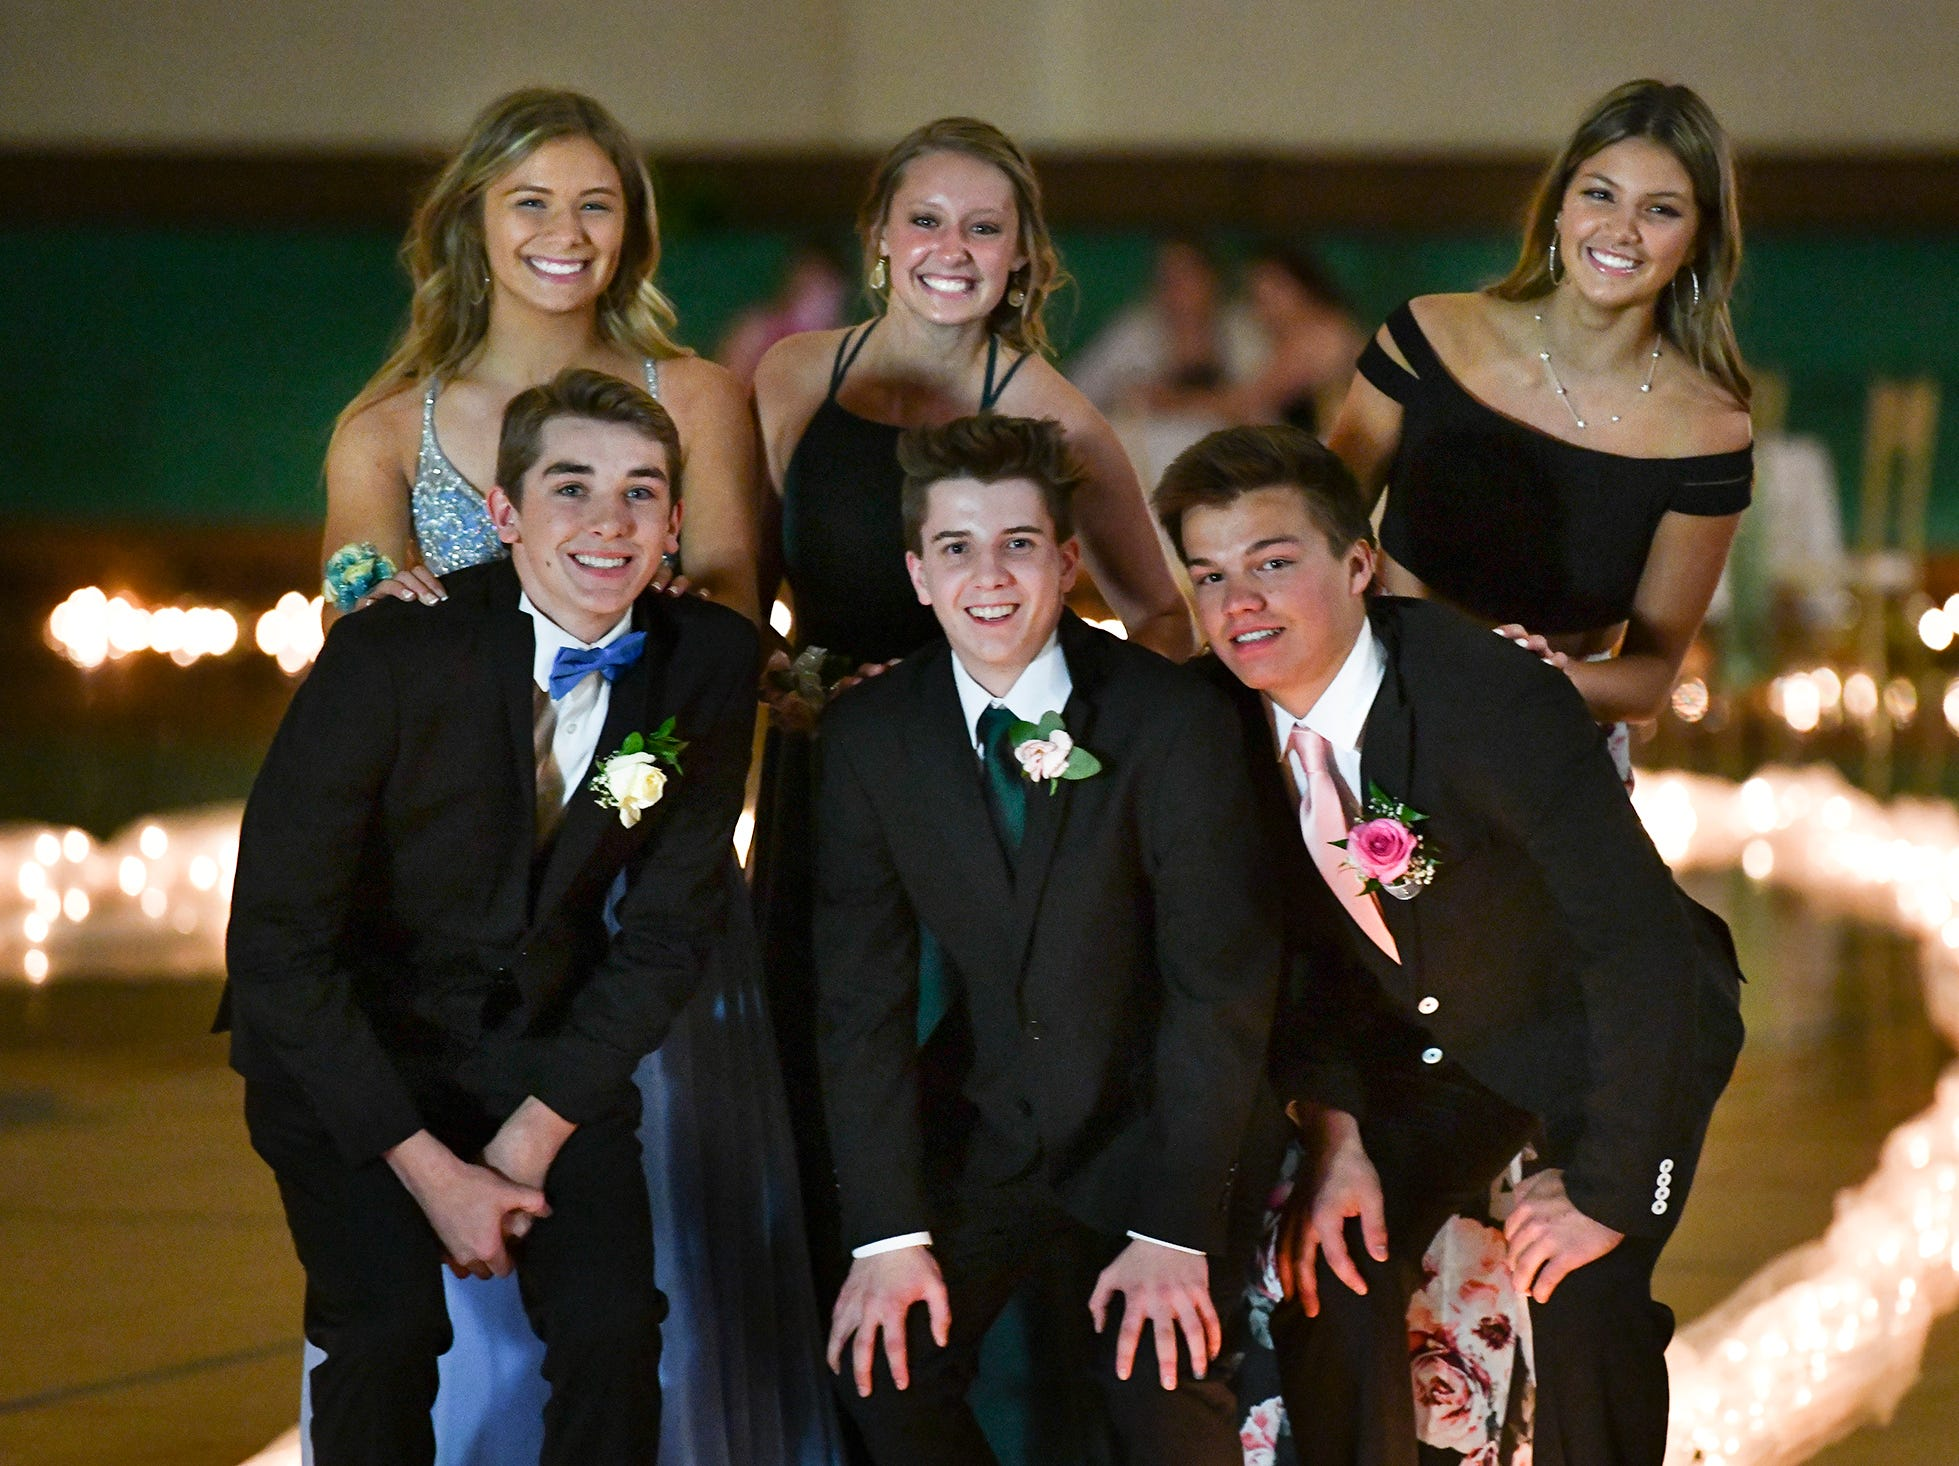 Friends gather for a photo after taking their turn at prom grand march Saturday, April 27, at Tech High School in St. Cloud.